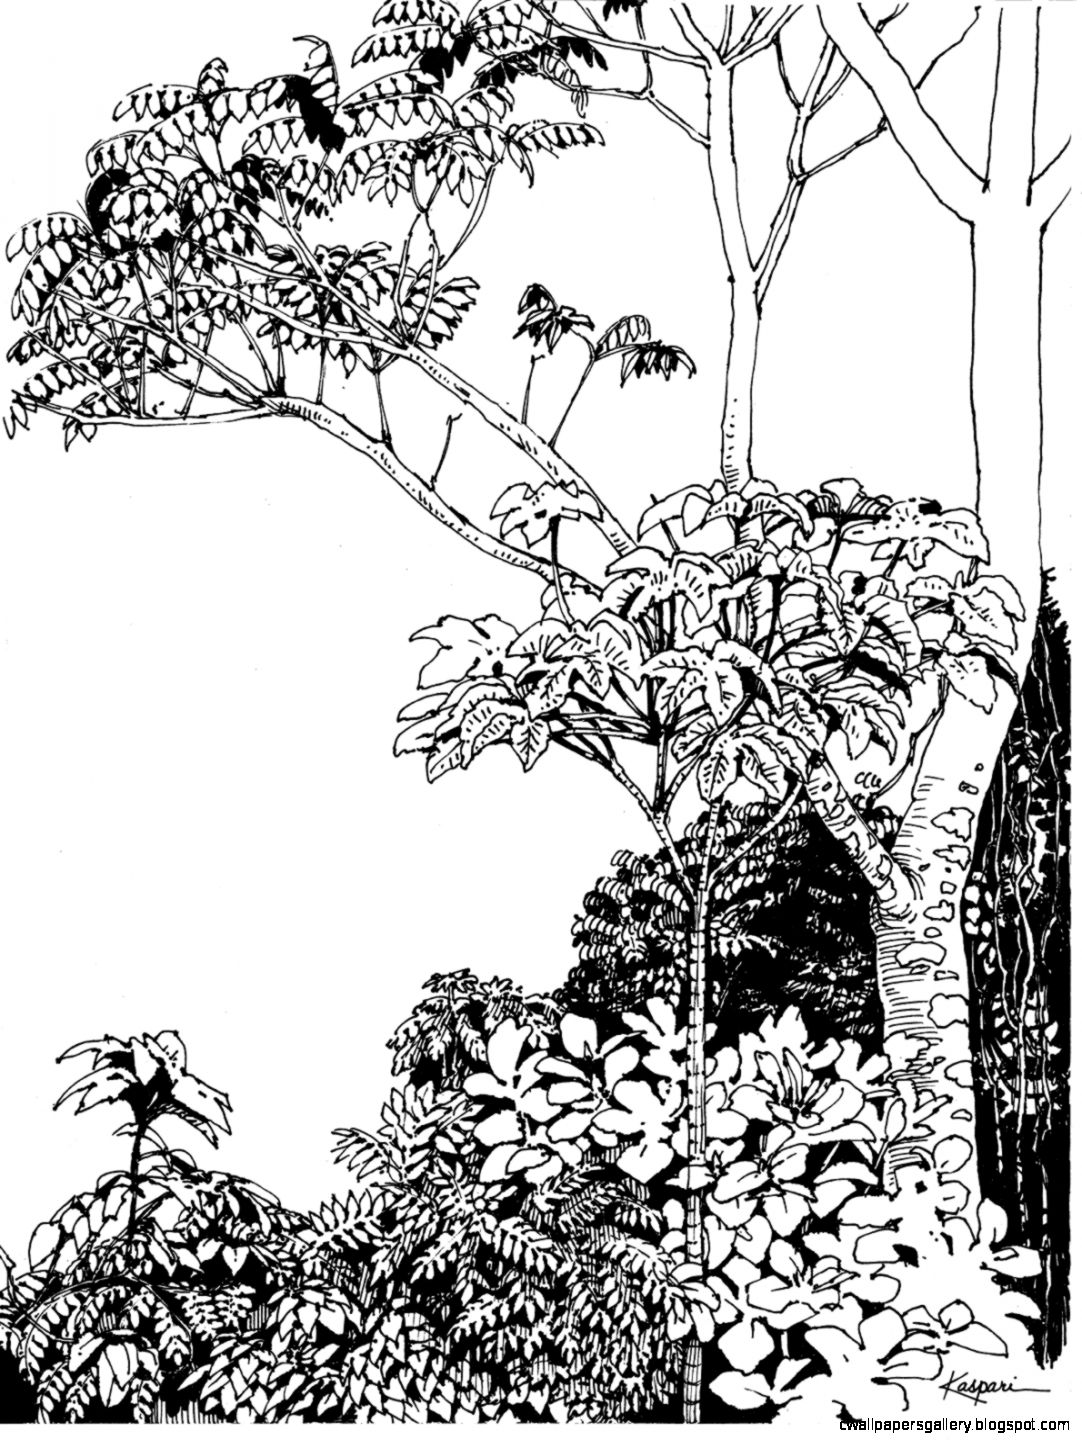 rainforest tree coloring page rainforest coloring pages to download and print for free page tree rainforest coloring